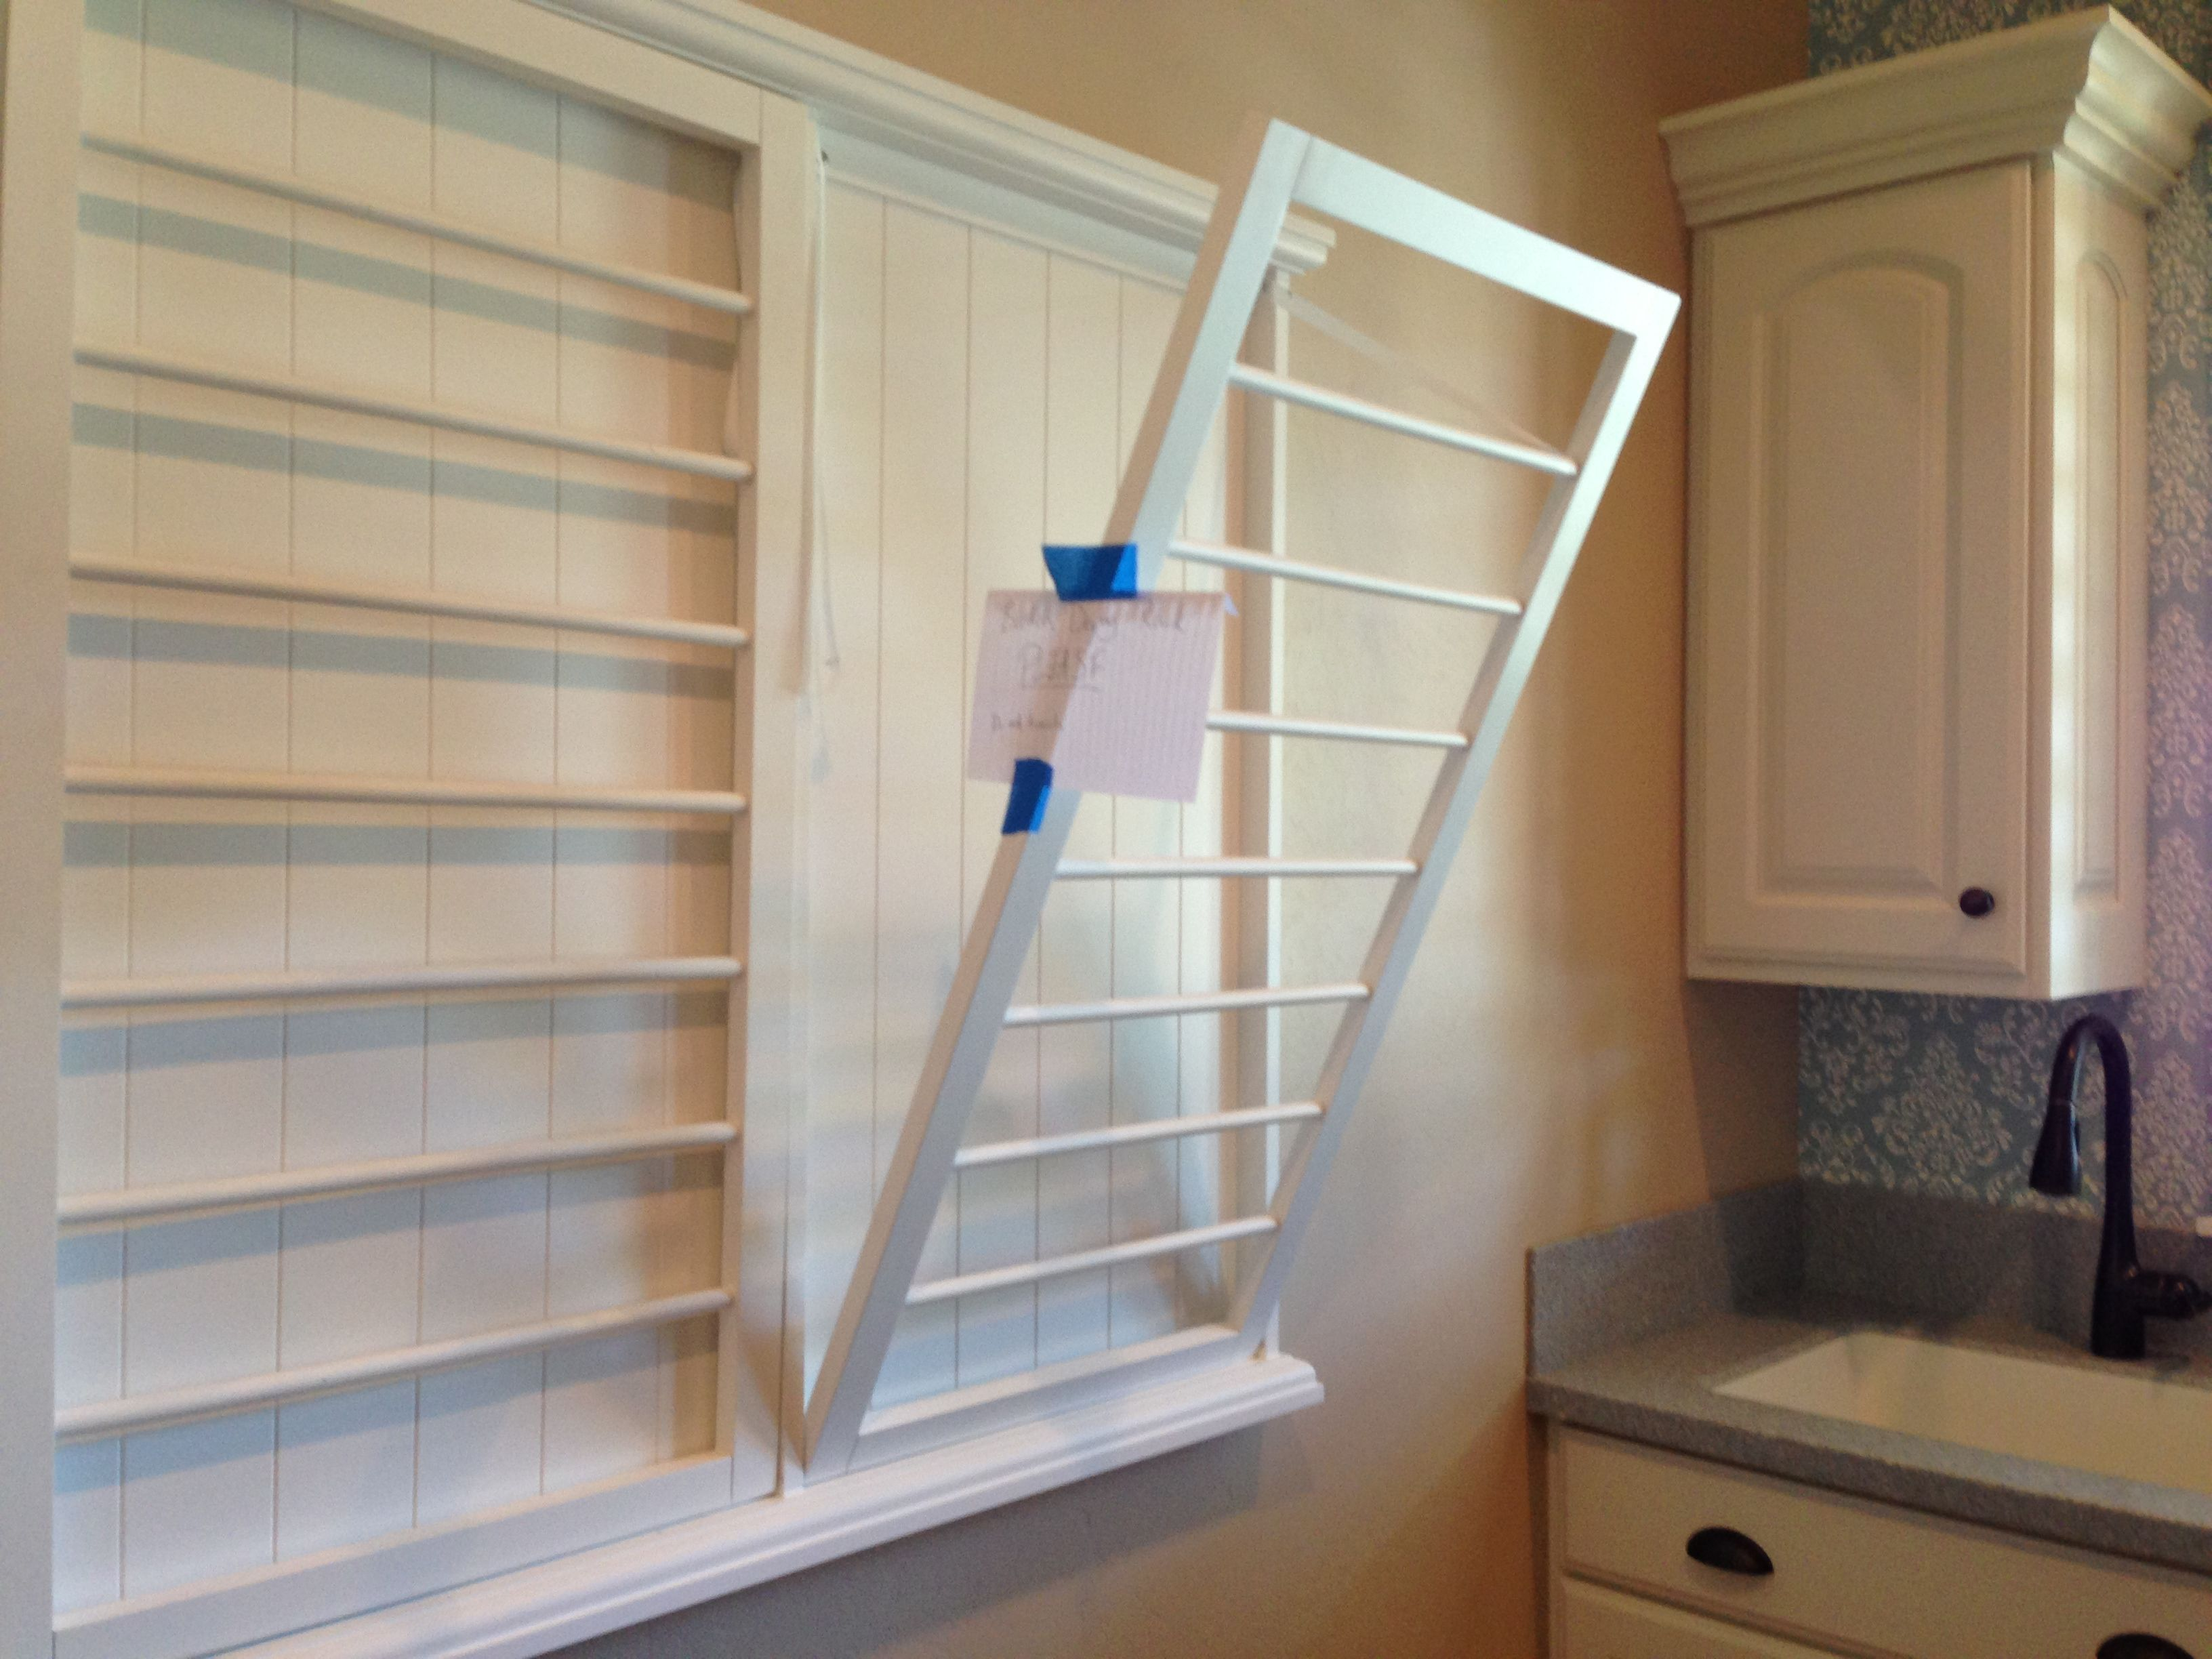 Laundry room drying rack idea laundry pinterest Laundry room drying rack ideas